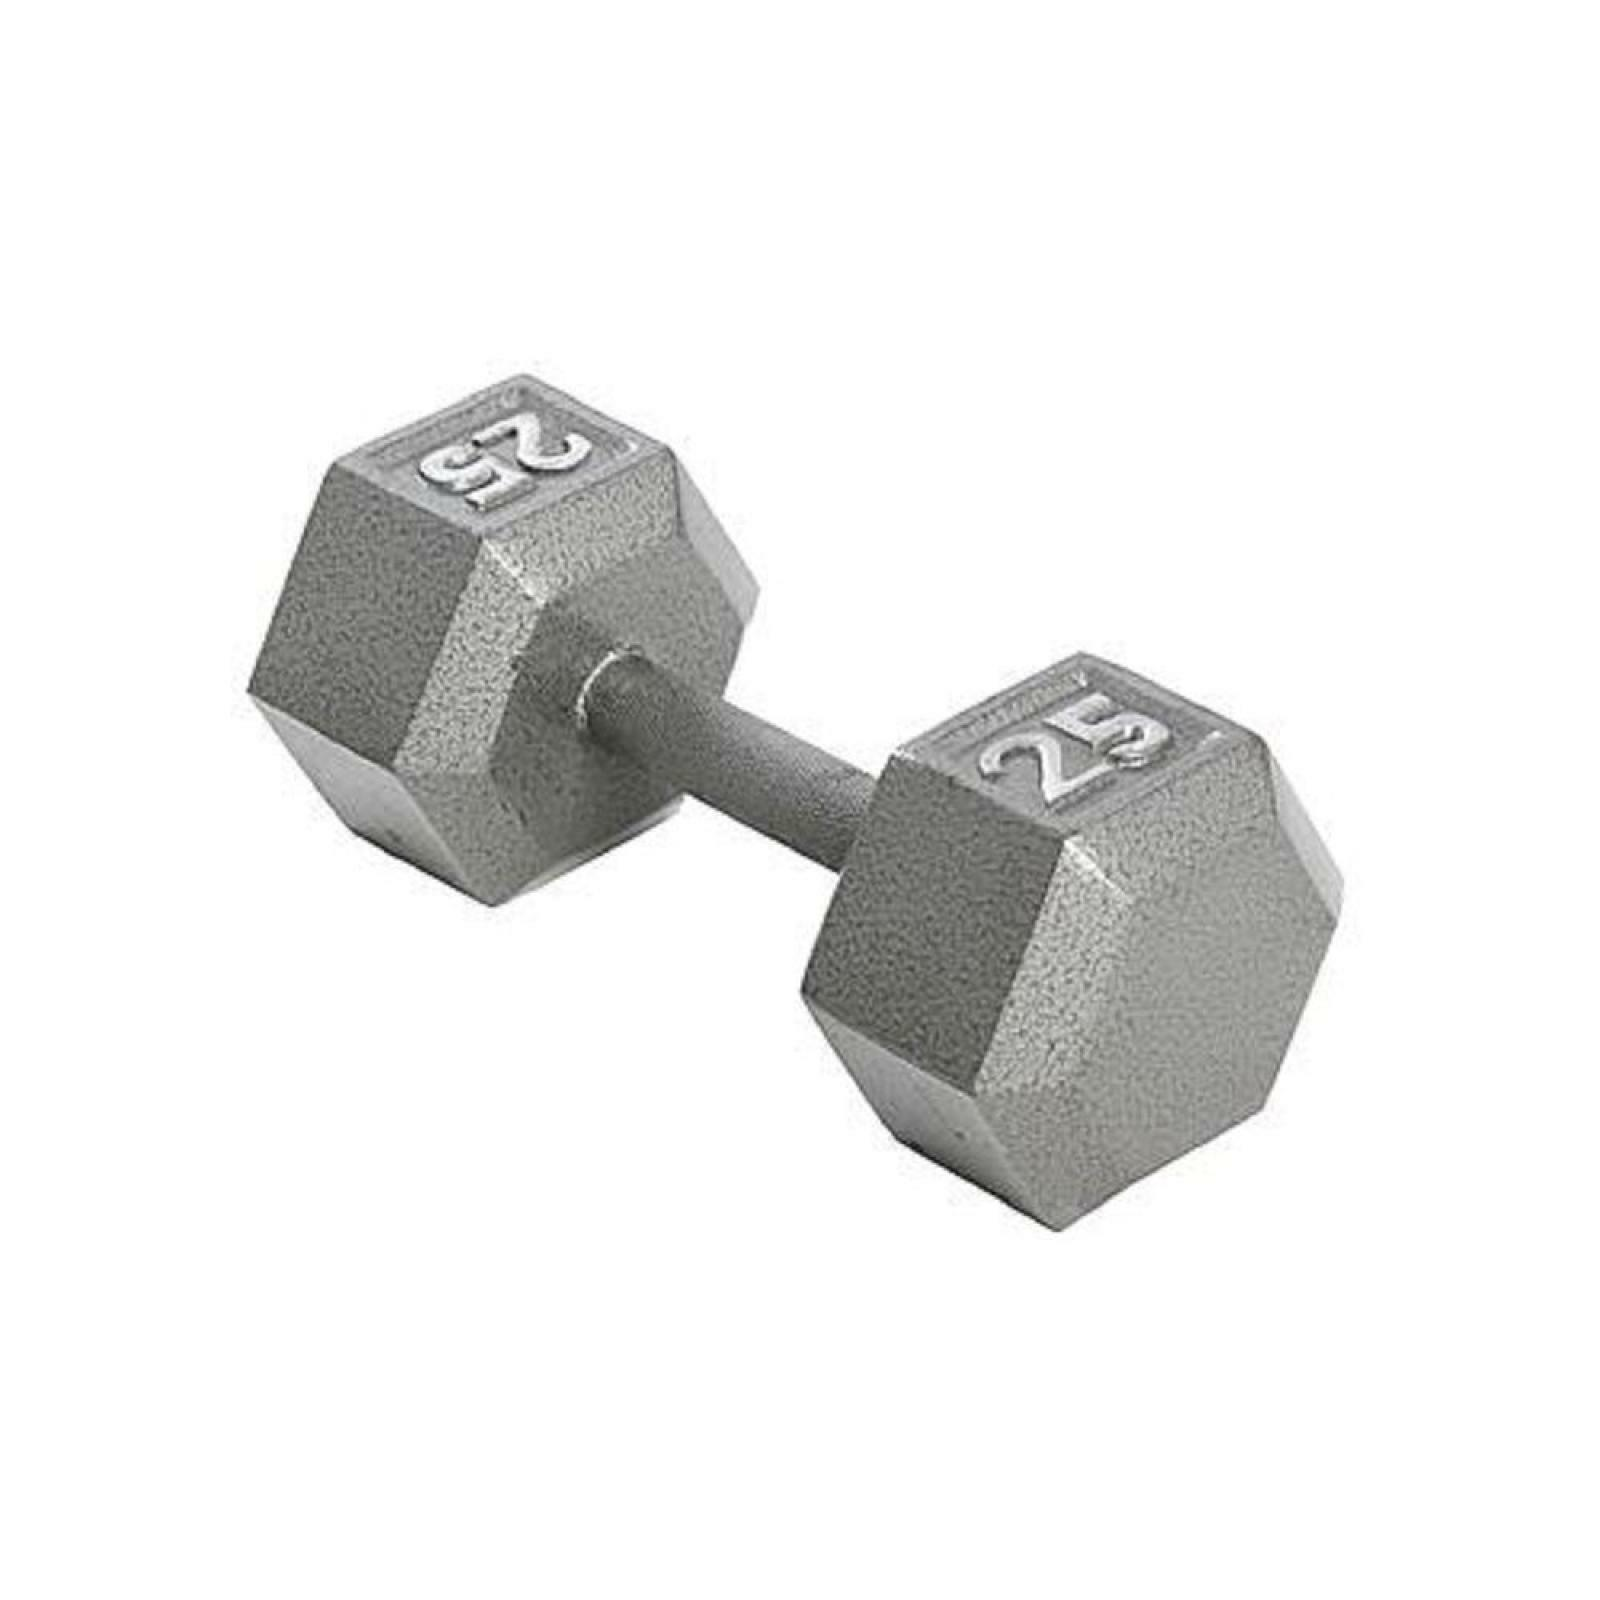 25 lb. Hex Dumbbell Non Slip Knurled Grip Weights Strengthen Training Upper Body